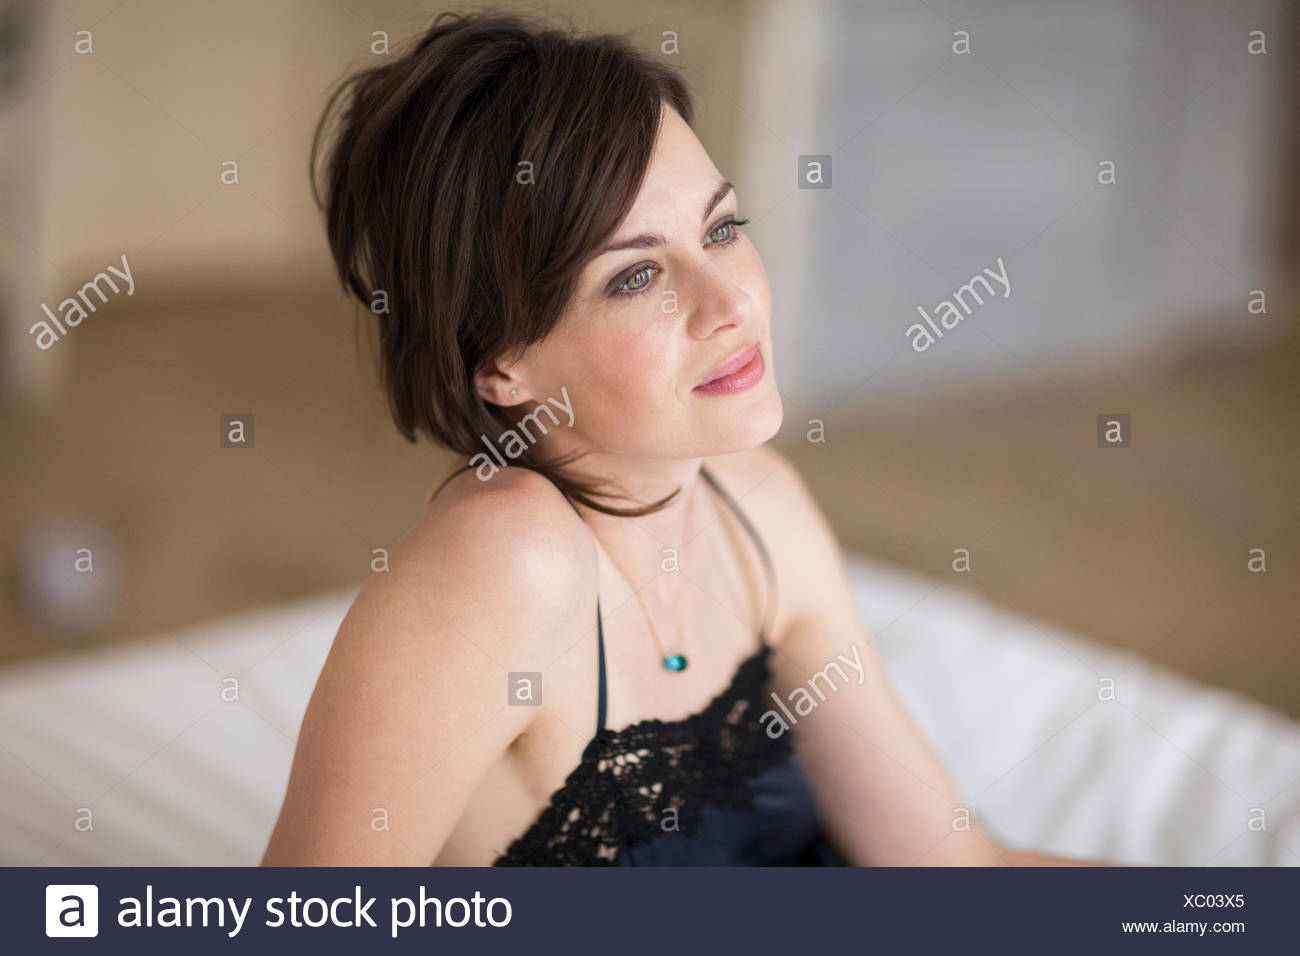 Belle femme assise sur le lit Photo Stock